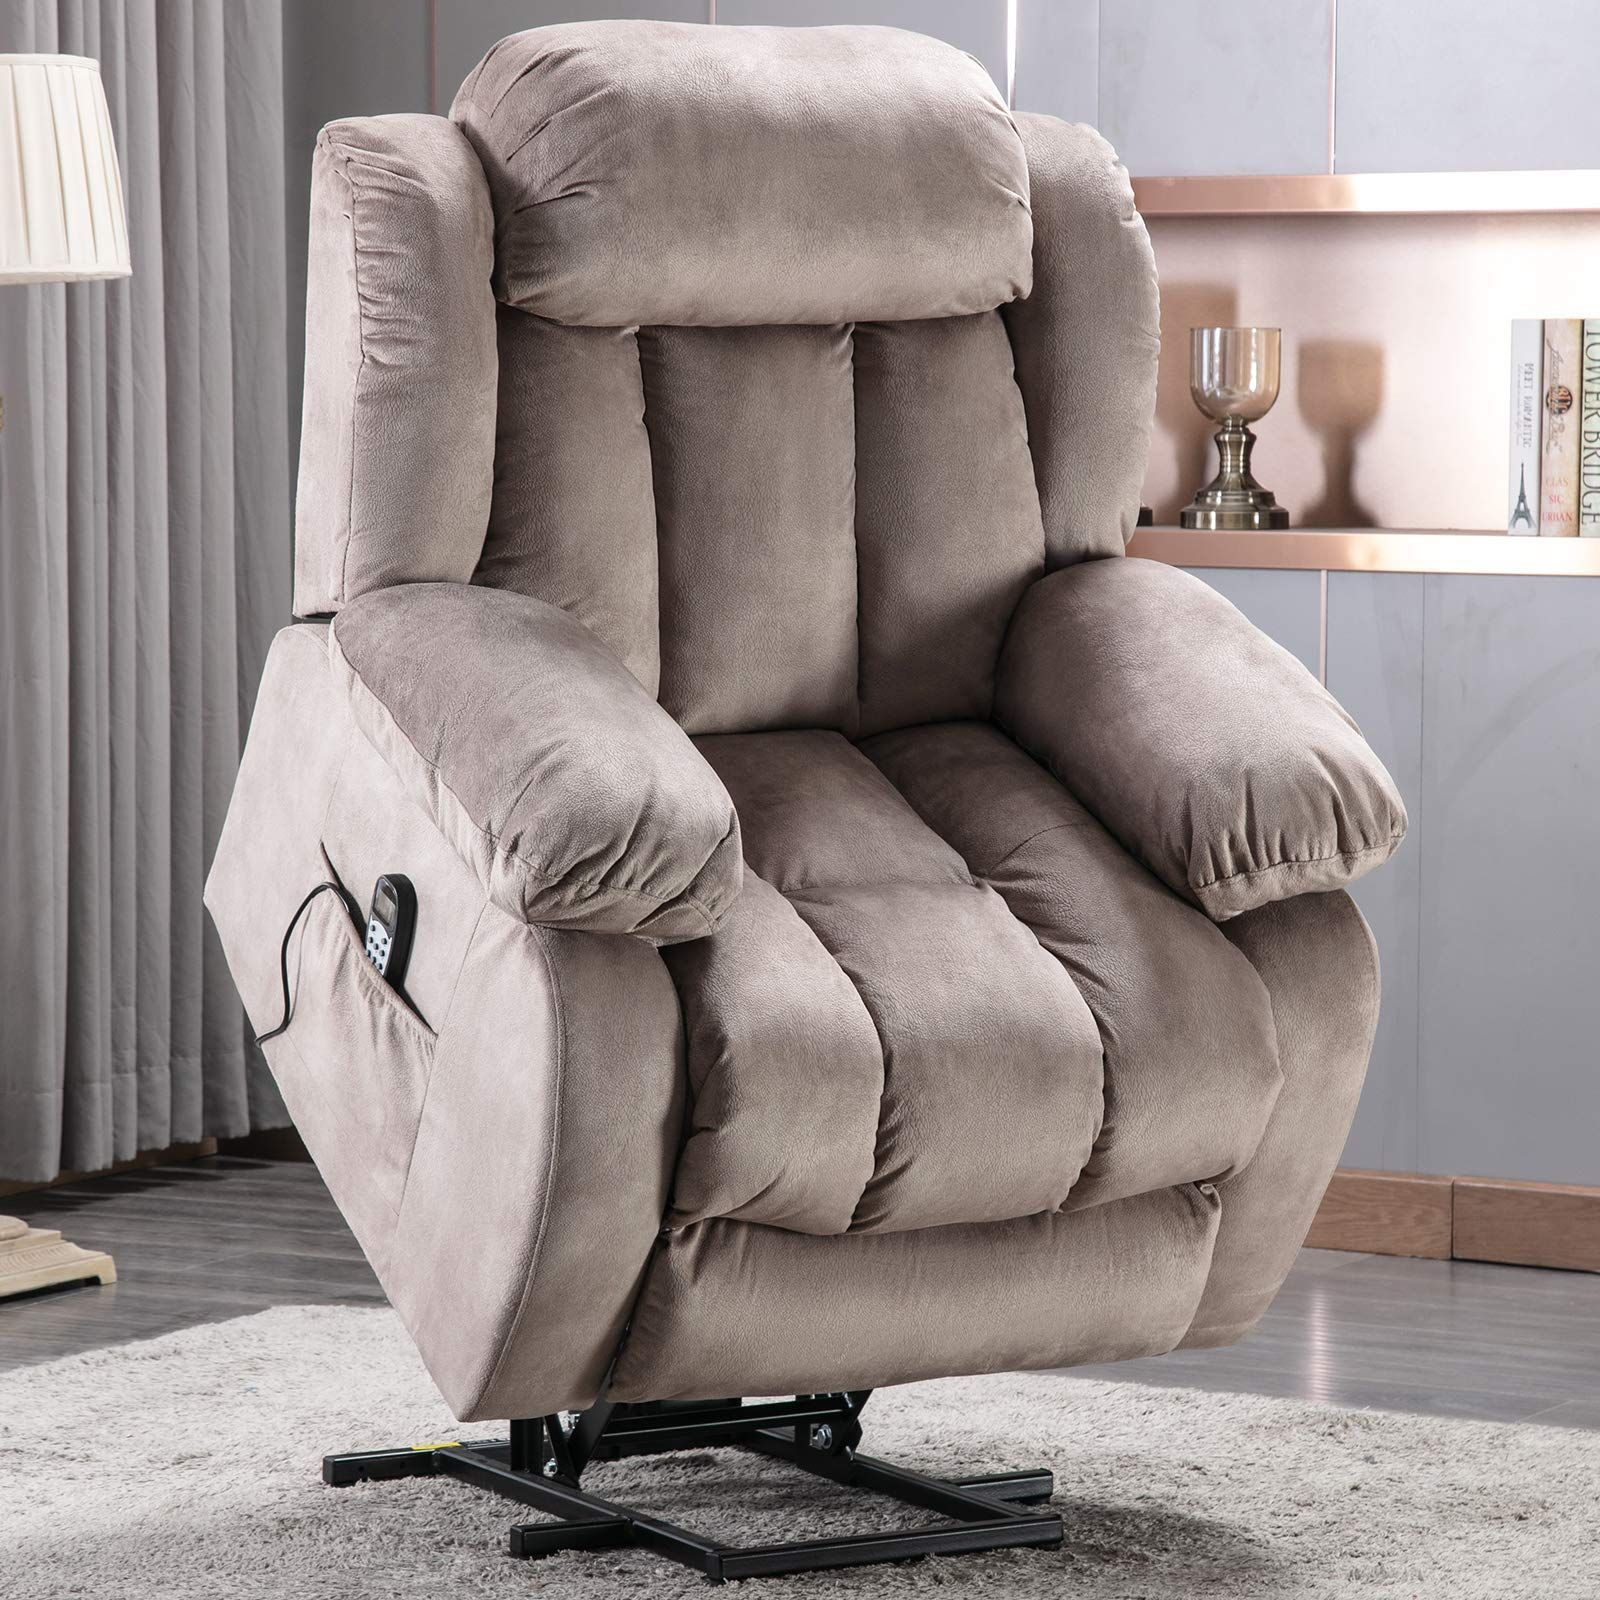 Here Is A List Of The Most Comfortable Recliners In 2020 In 2020 Recliner Chair Lift Recliners Fabric Sofa